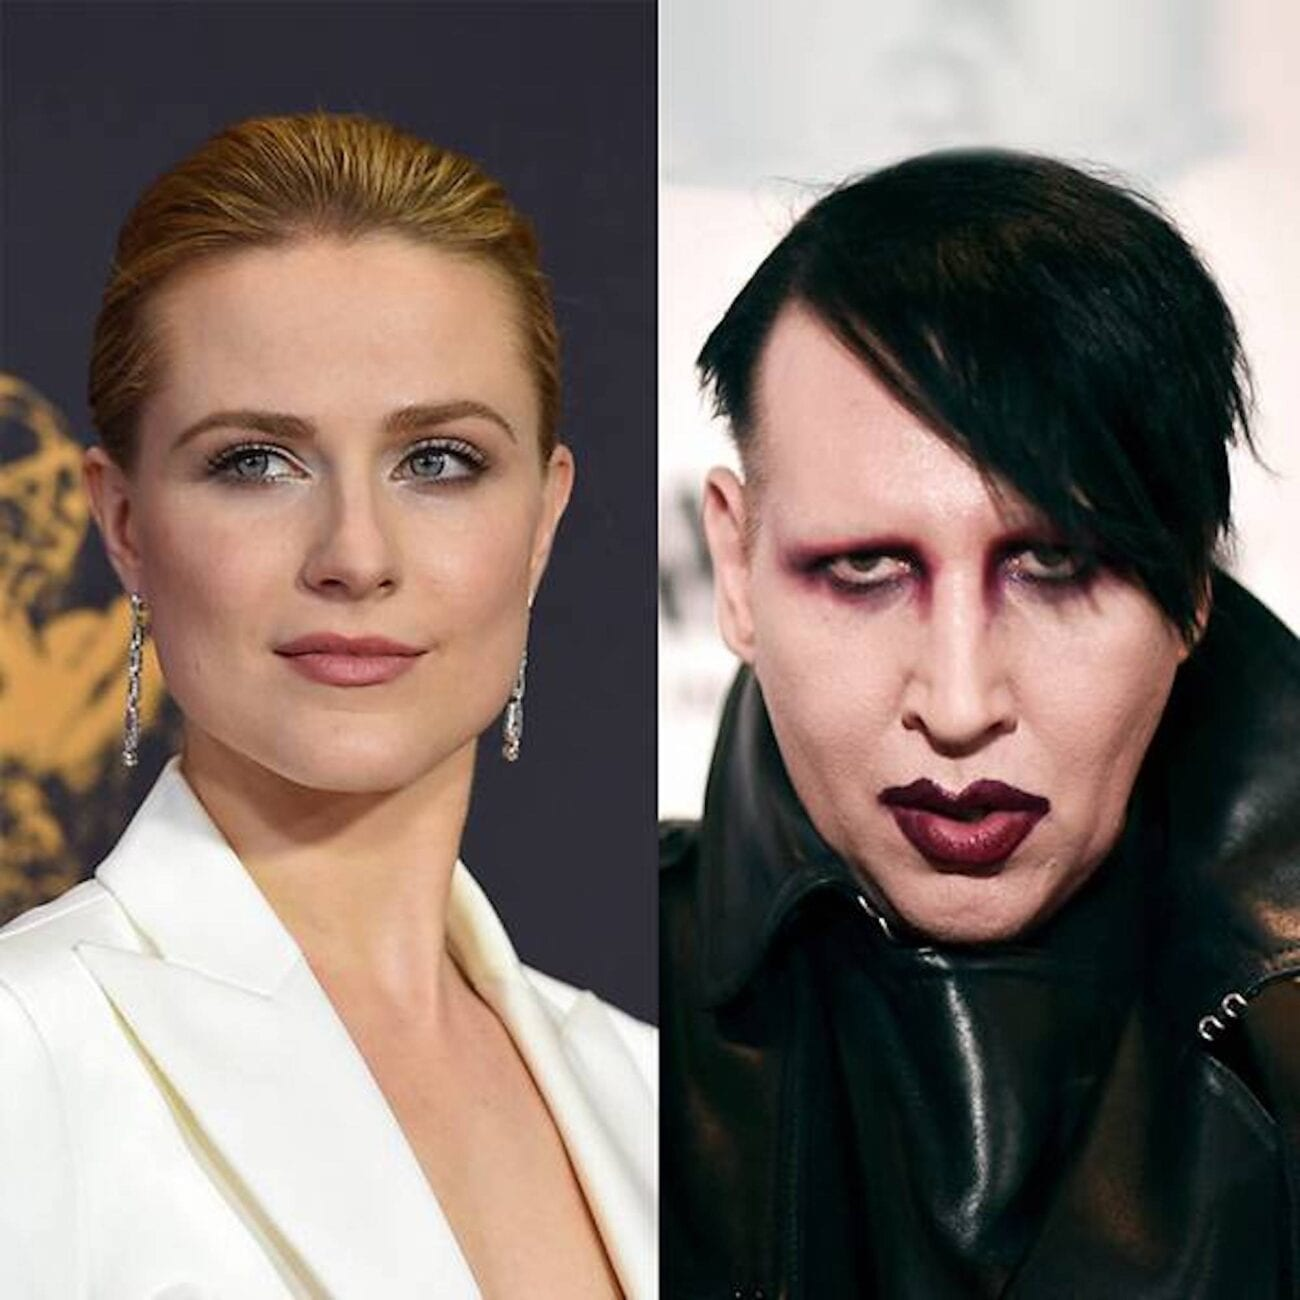 Why did the police go to Marilyn Manson's house days after Evan Rachel Wood's abuse allegations? Learn the details about the police presence.